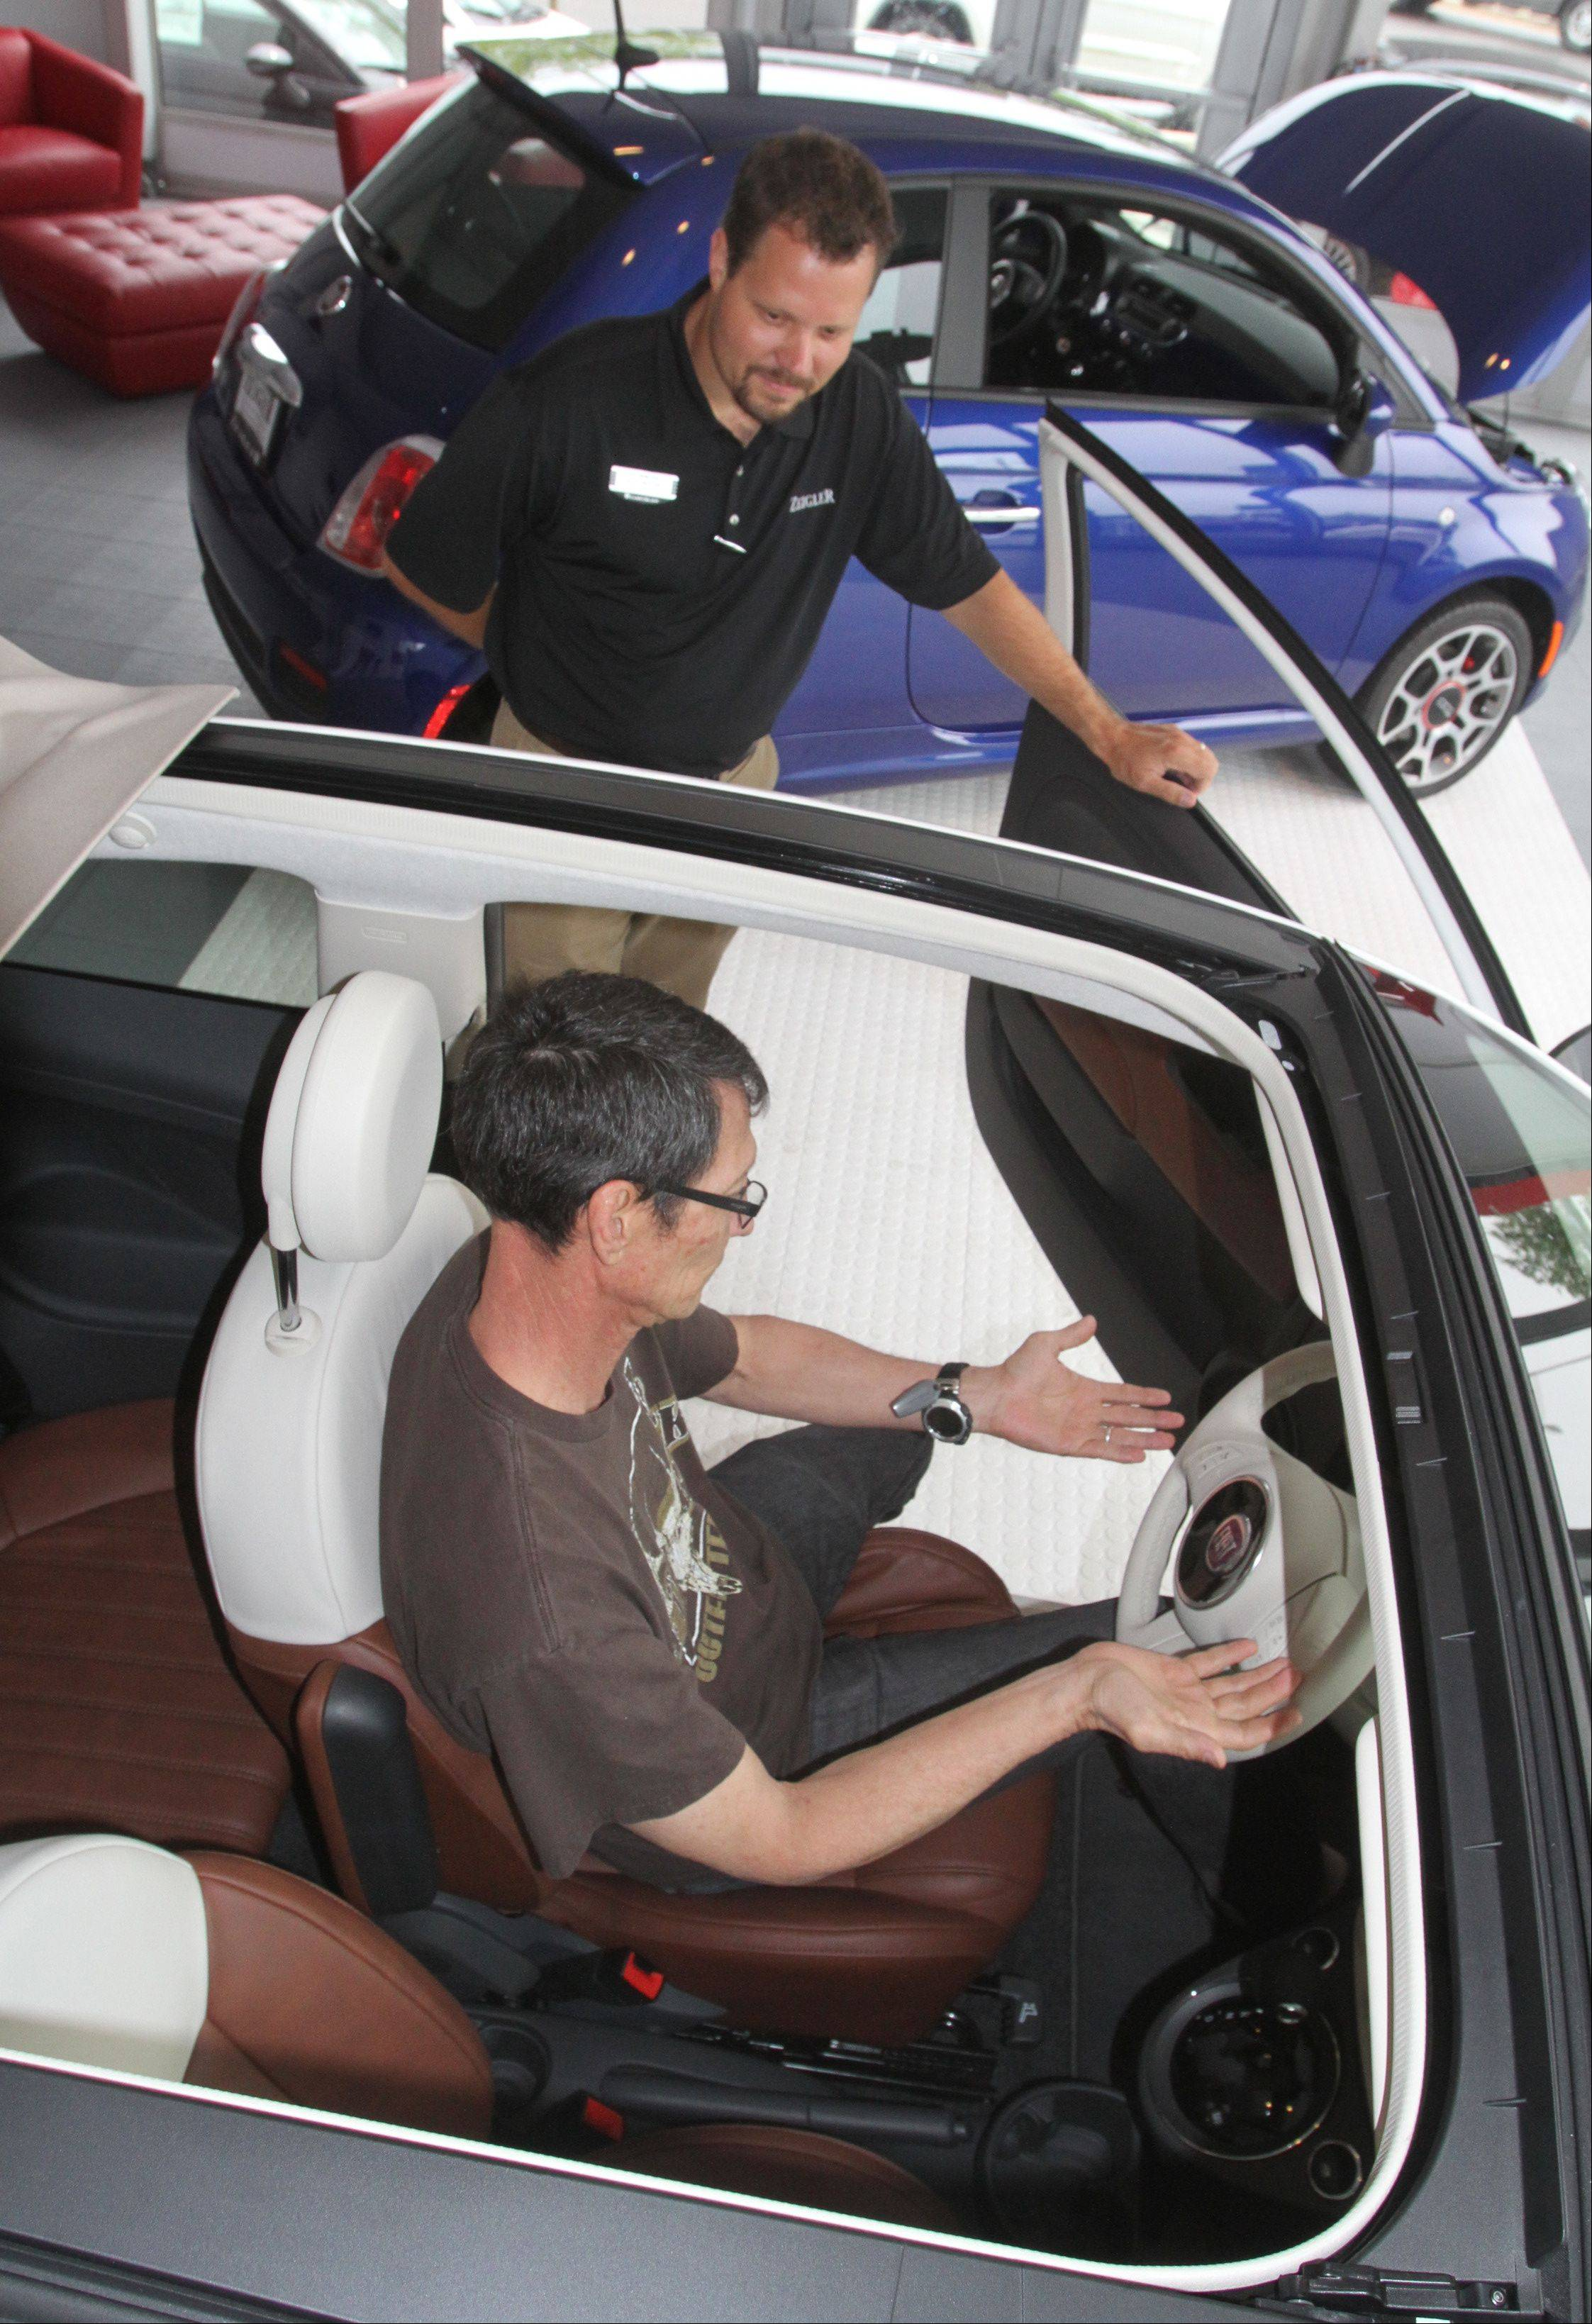 Jeff Nemcher, sales associate at Zeigler Chrysler Dodge Jeep, shows Wesley Hawk of Bartlett the 2012 Fiat 500 Pop car in the dealership's showroom in Schaumburg on Wednesday. The dealership is one of 300 in the country chosen to help reintroduce the Fiat brand to the U.S. market.